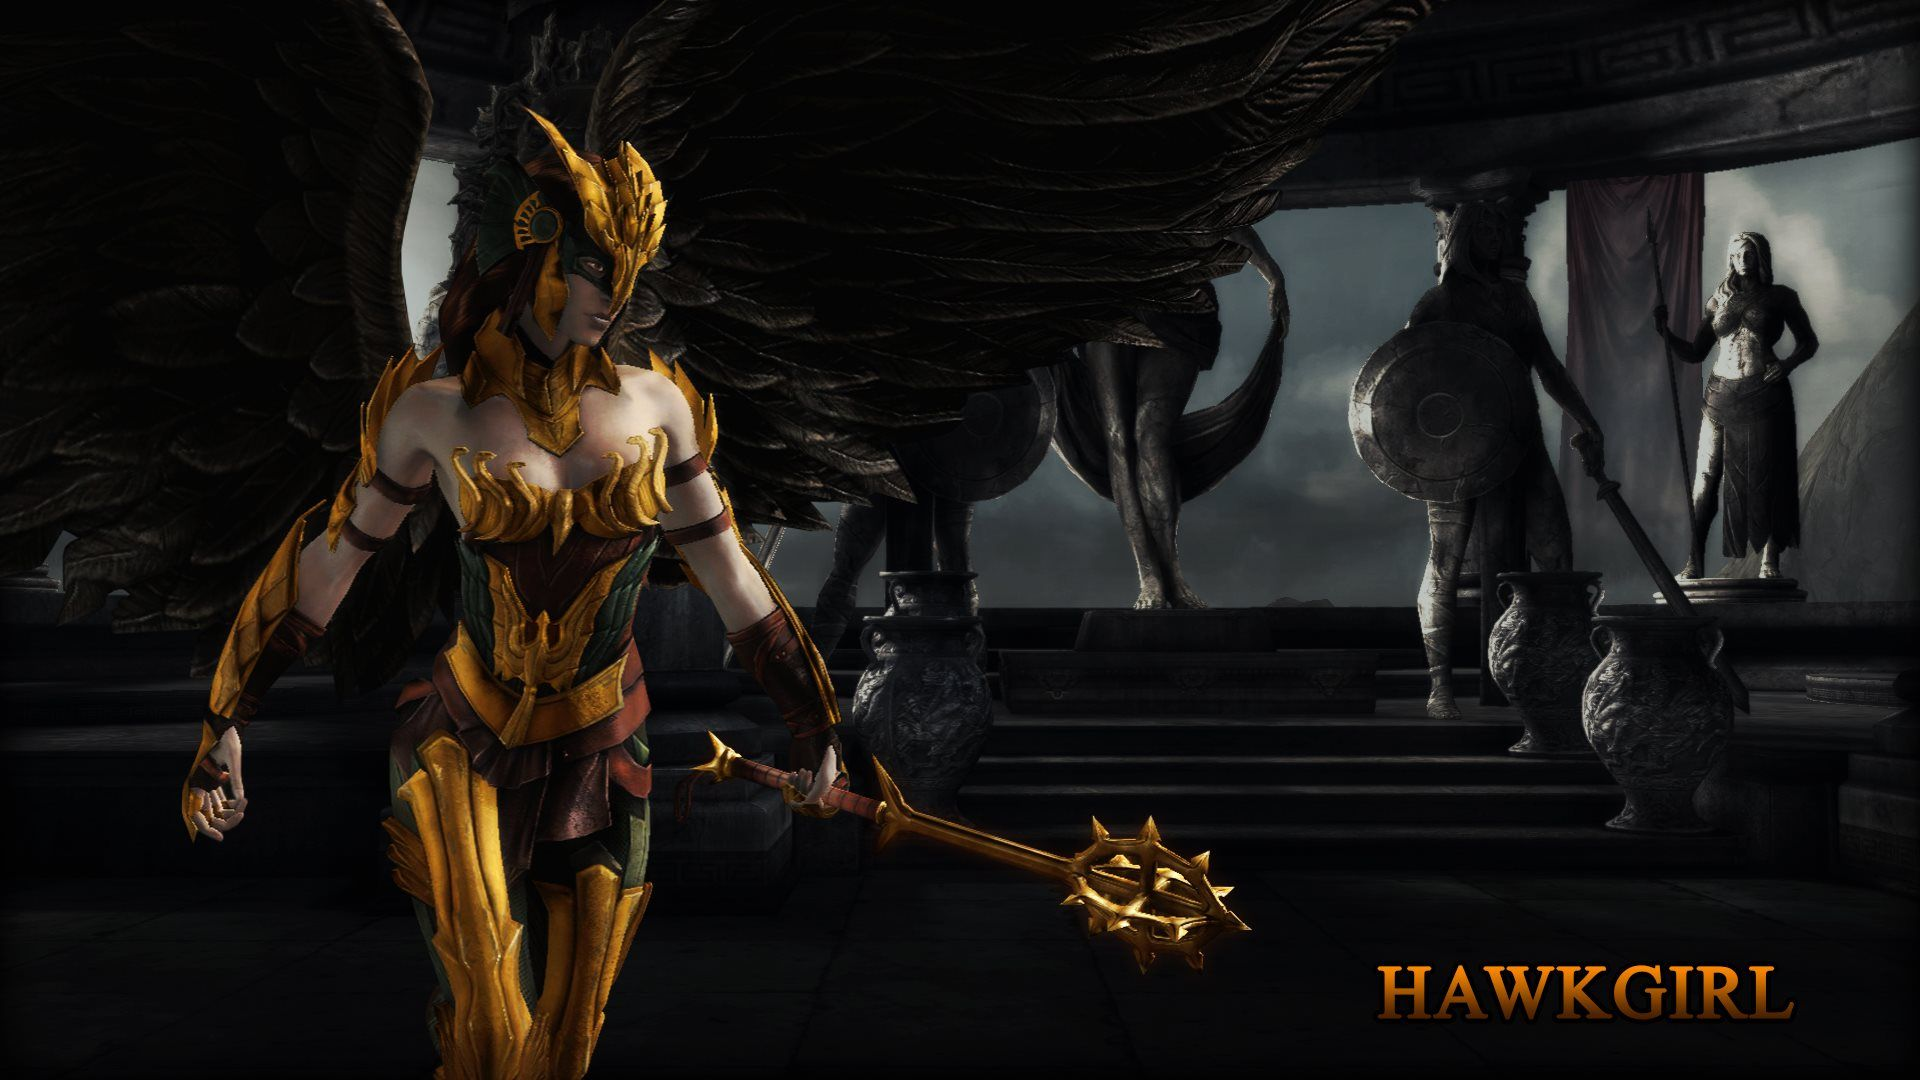 Pin by finewallpapers on 3d abstract pinterest hawkgirl hawkgirl regime wallpaper from injustice gods among us using program photoshop full size hawkgirl regime wallpaper voltagebd Gallery